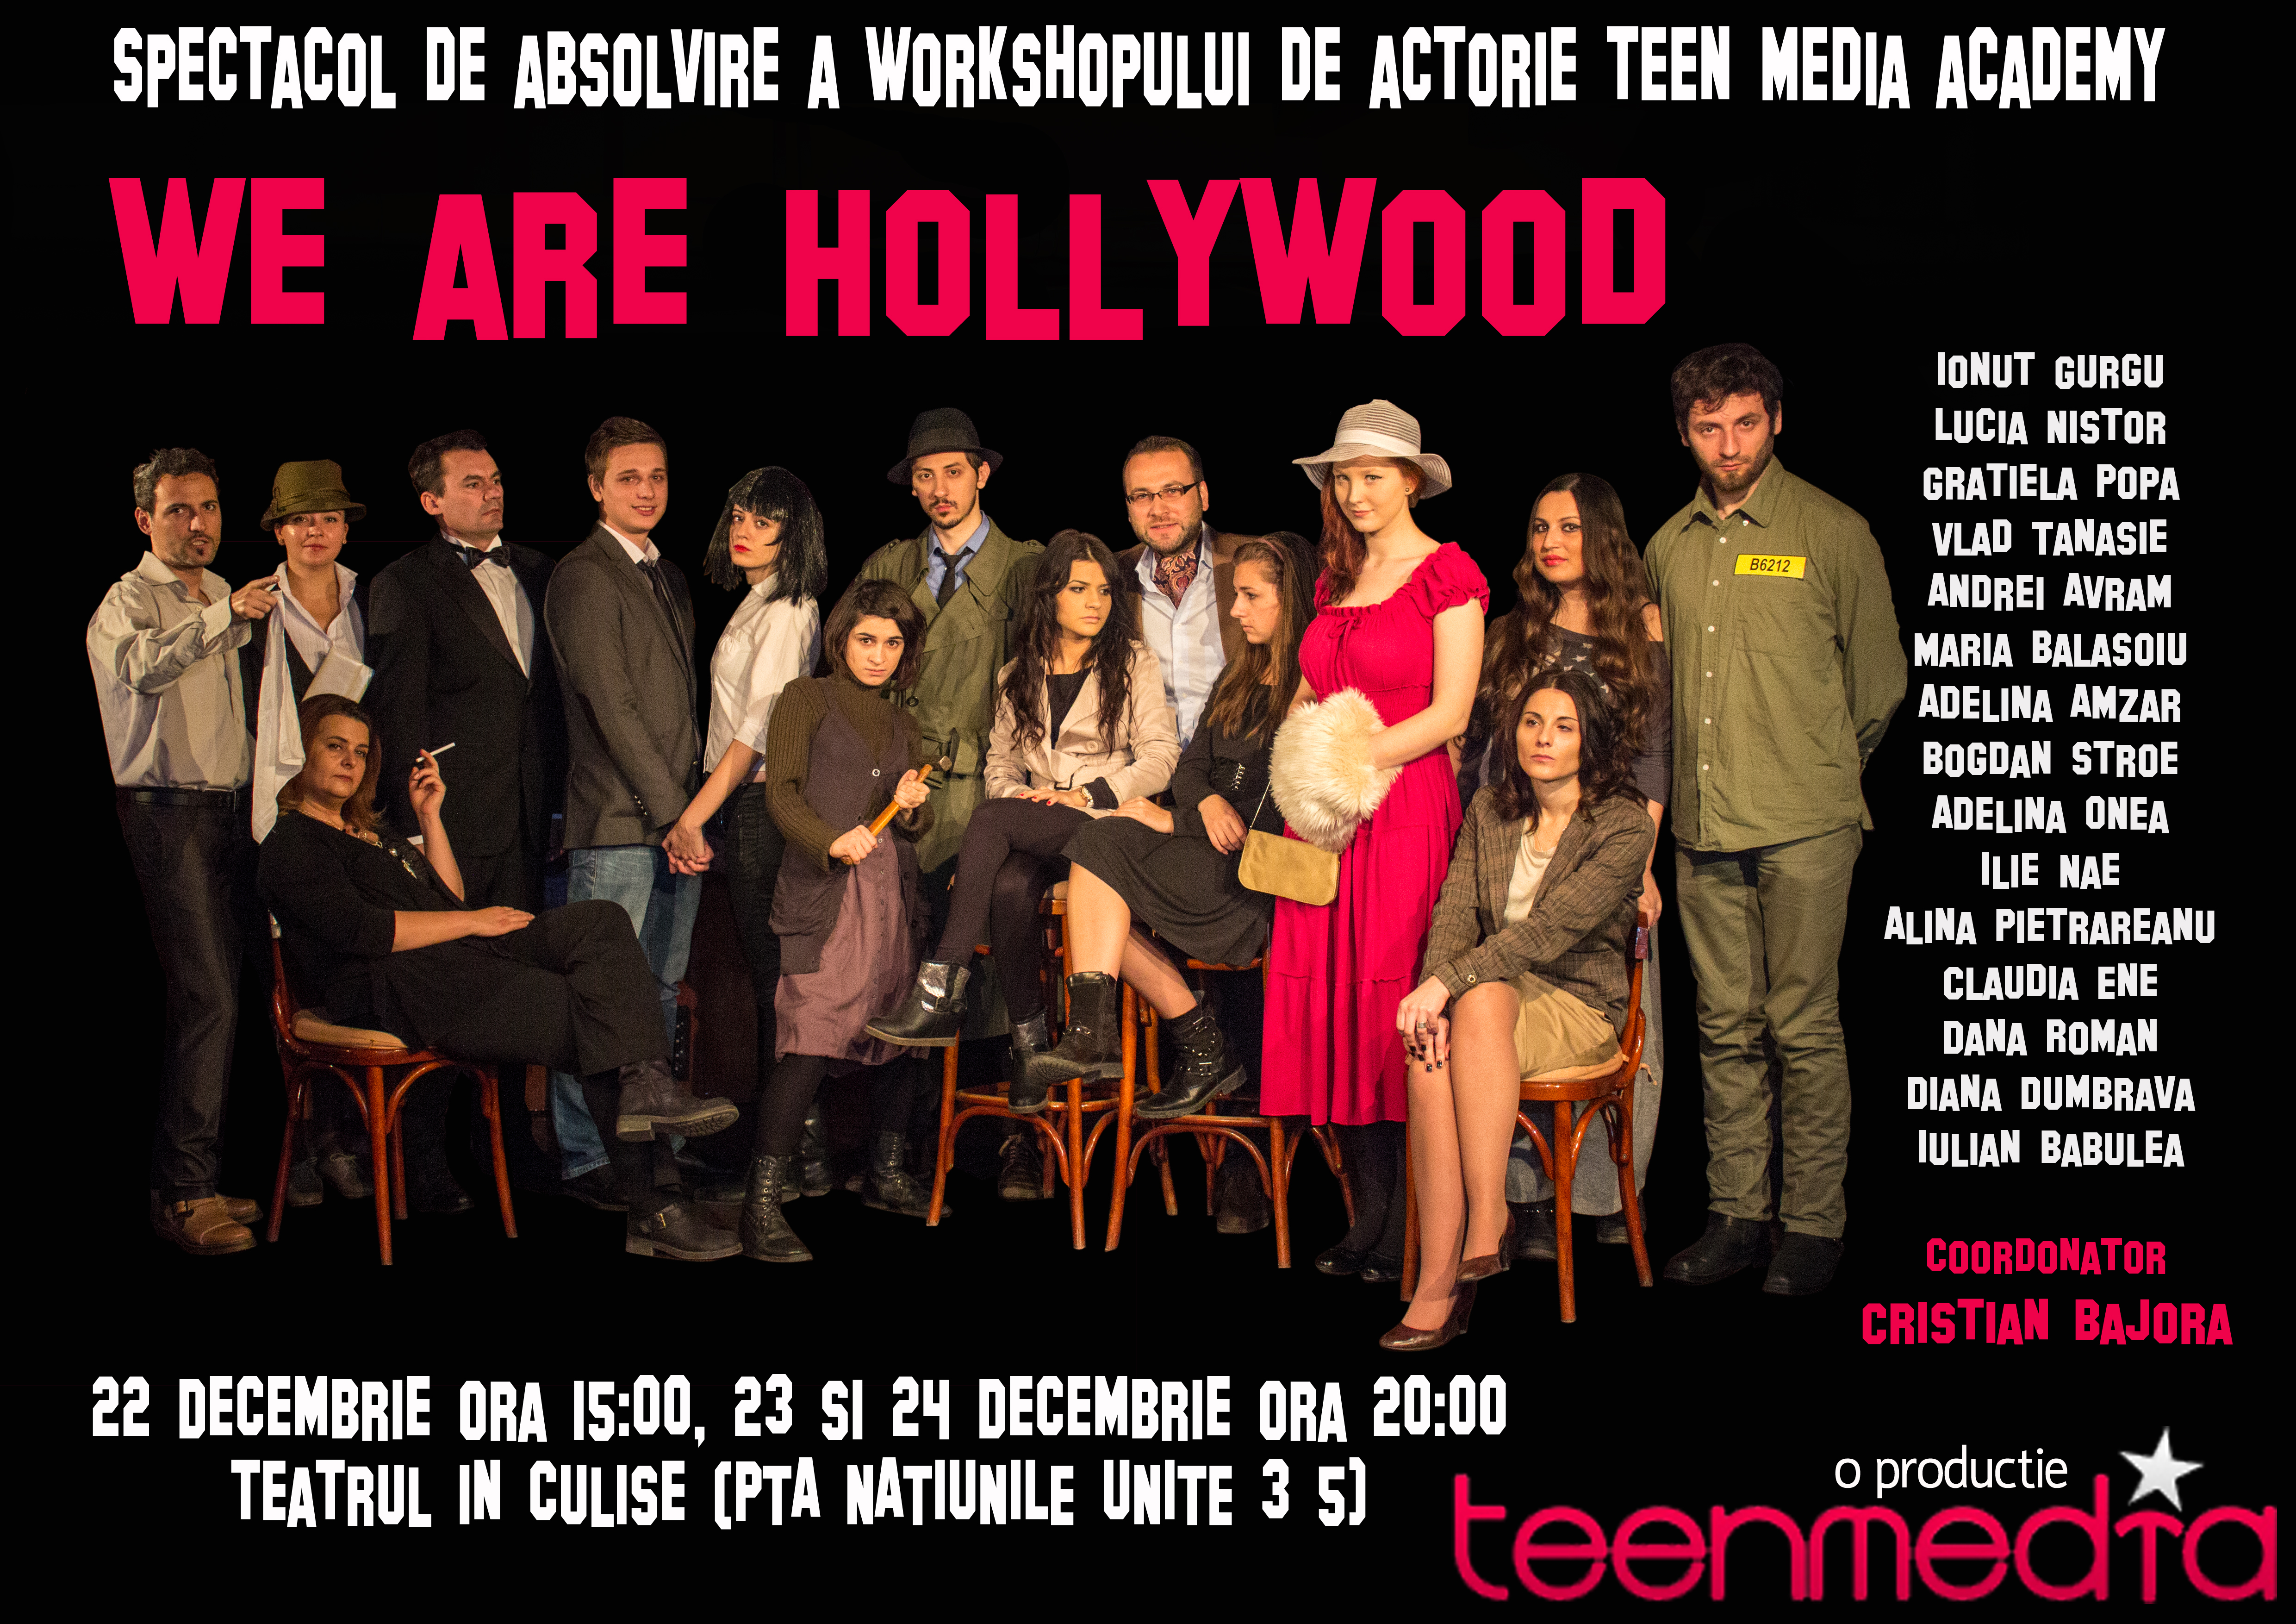 We are Hollywood copy